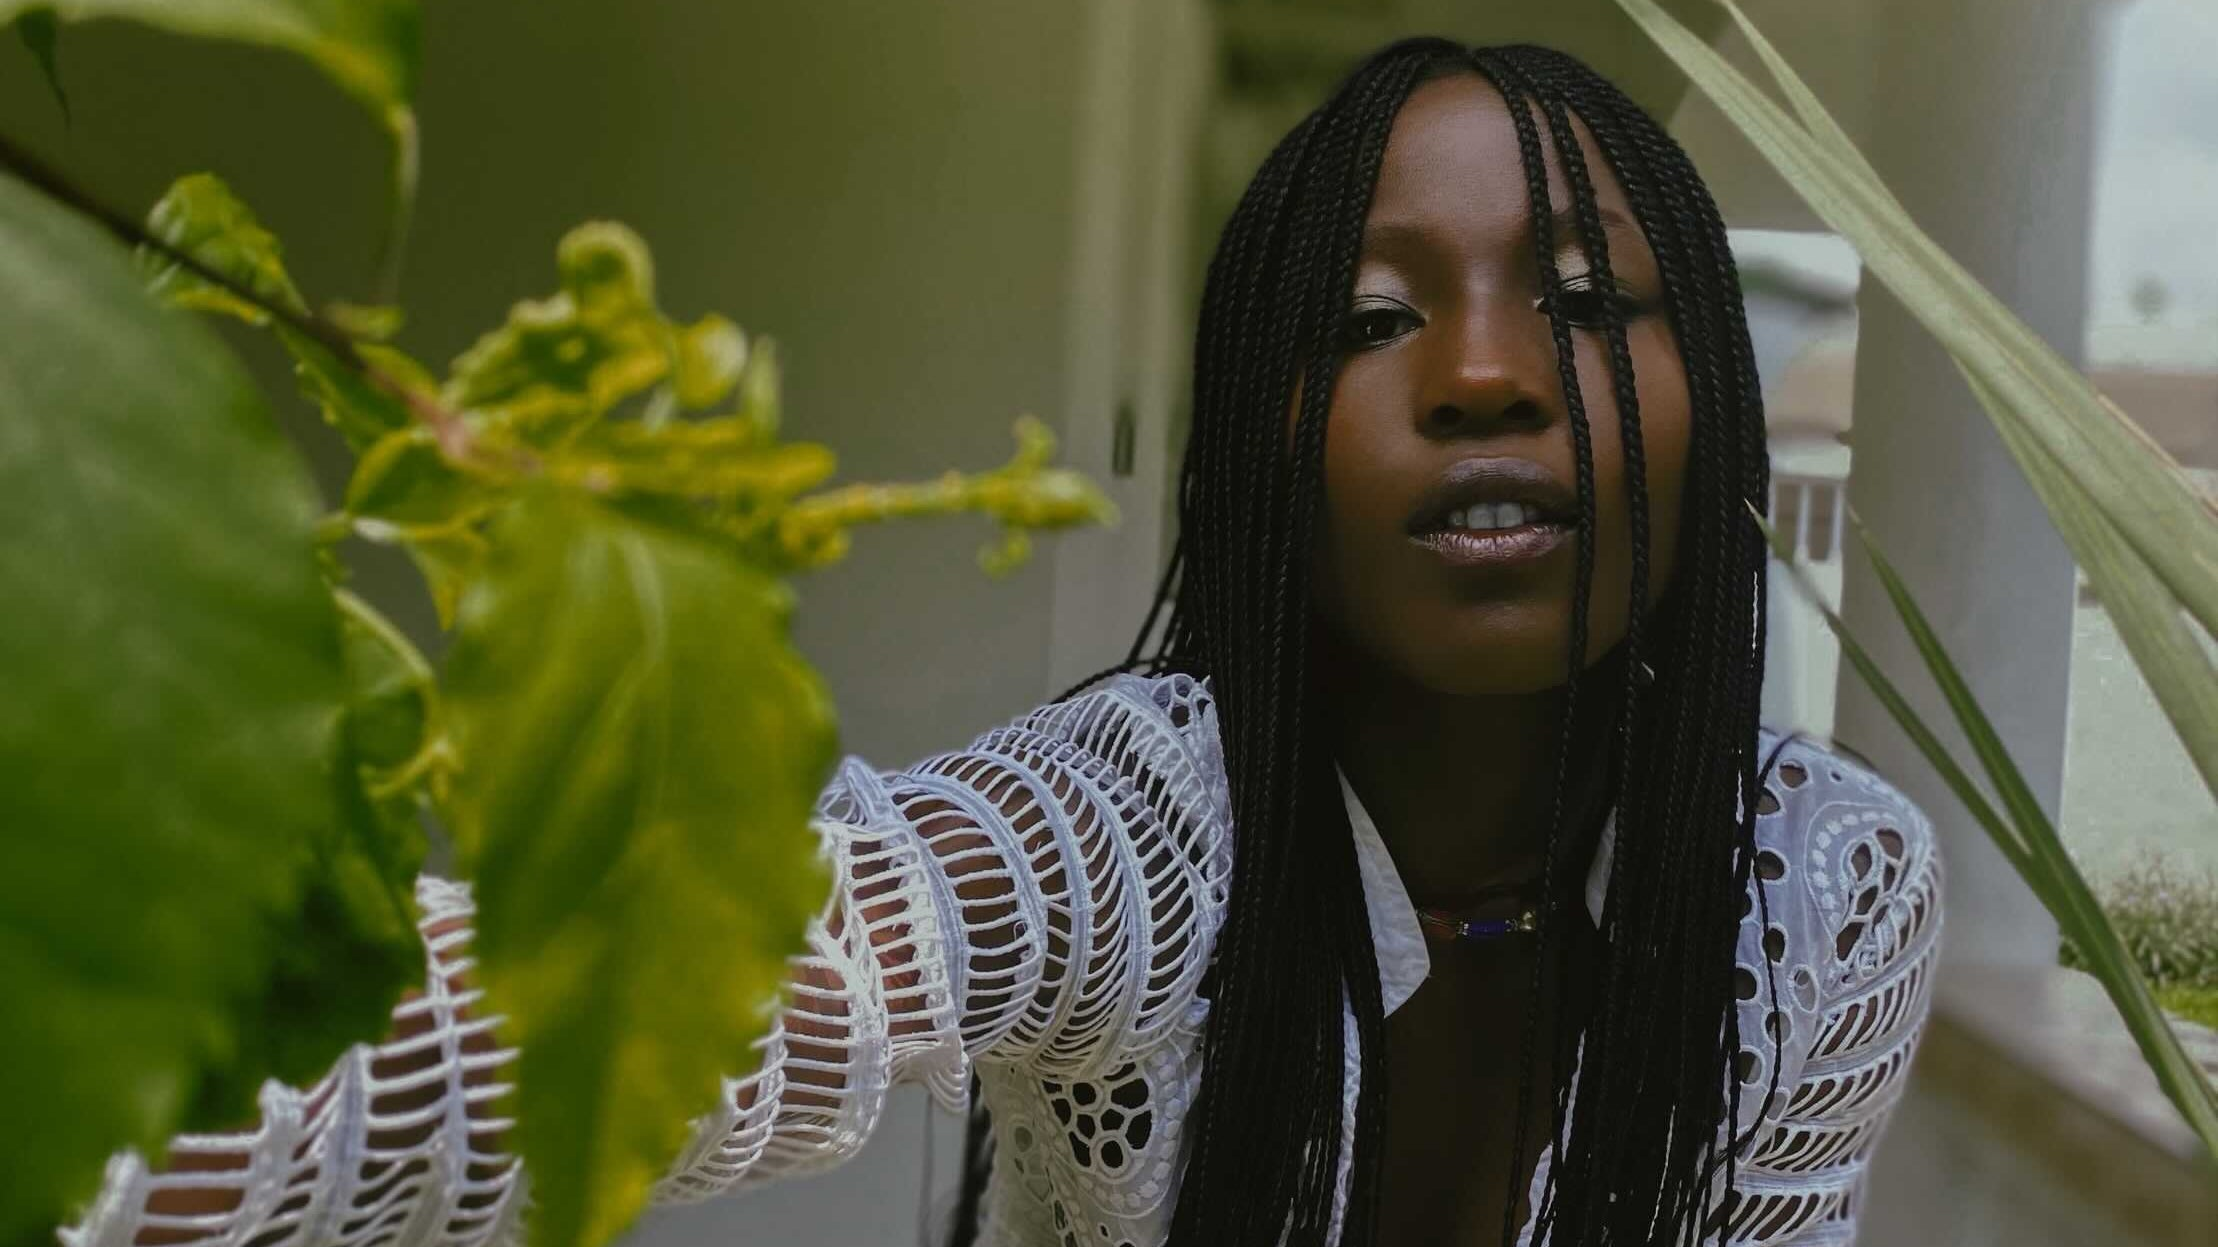 From The Philharmonic To Hip-Hop, Rapper HAWA Is Carving Out A Lane Of Her Own